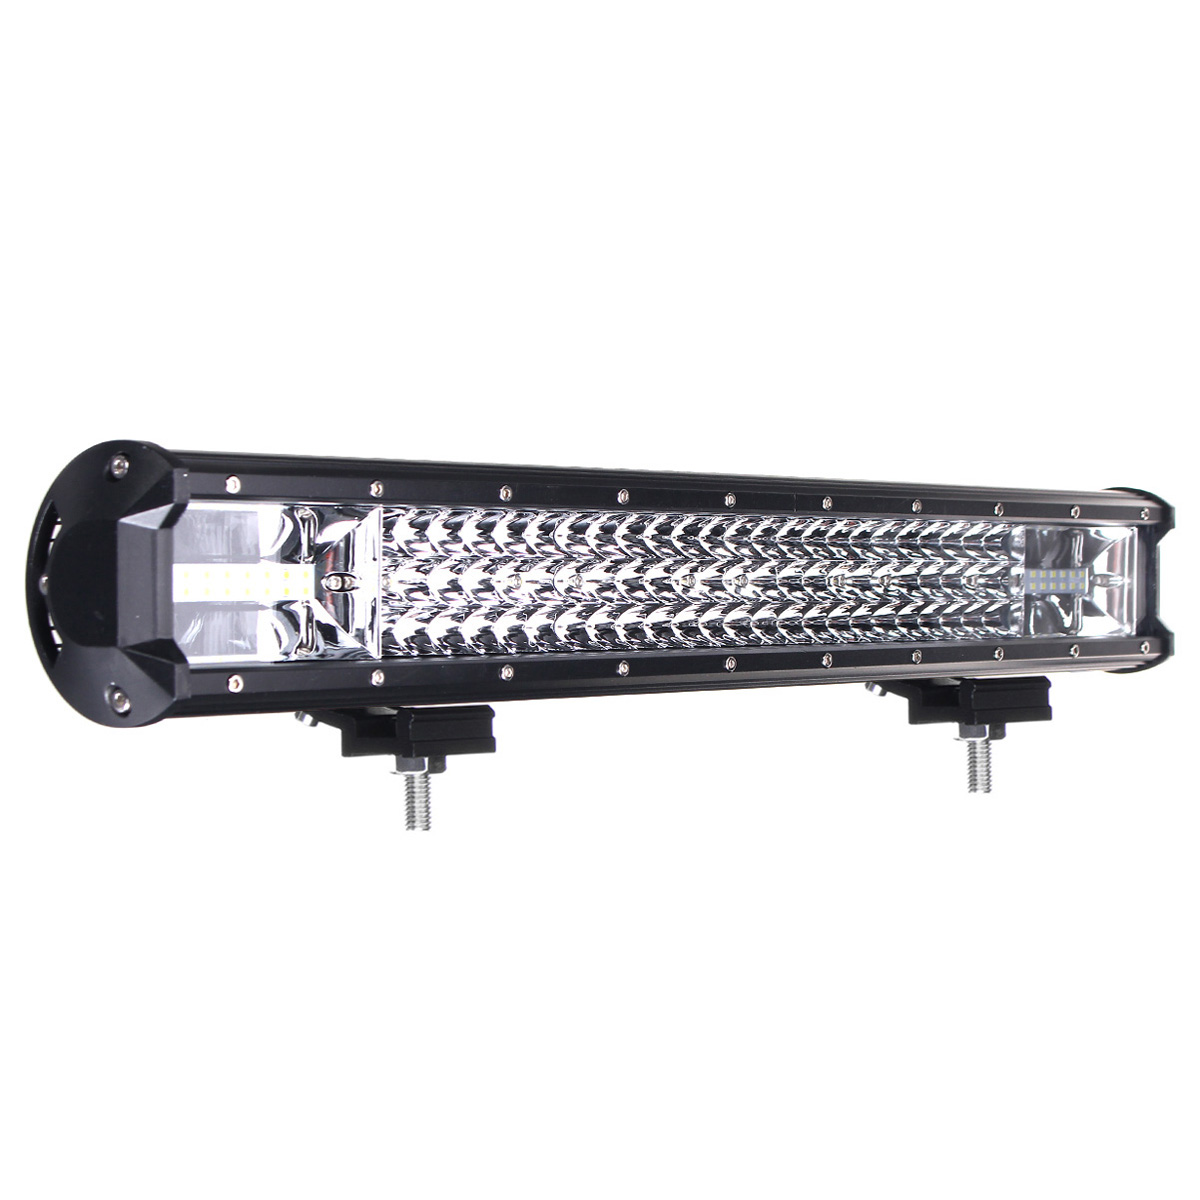 22 Inch 648W LED Light Bars Flood Spot Combo Beam Driving Lamp for Truck Off Road Boat